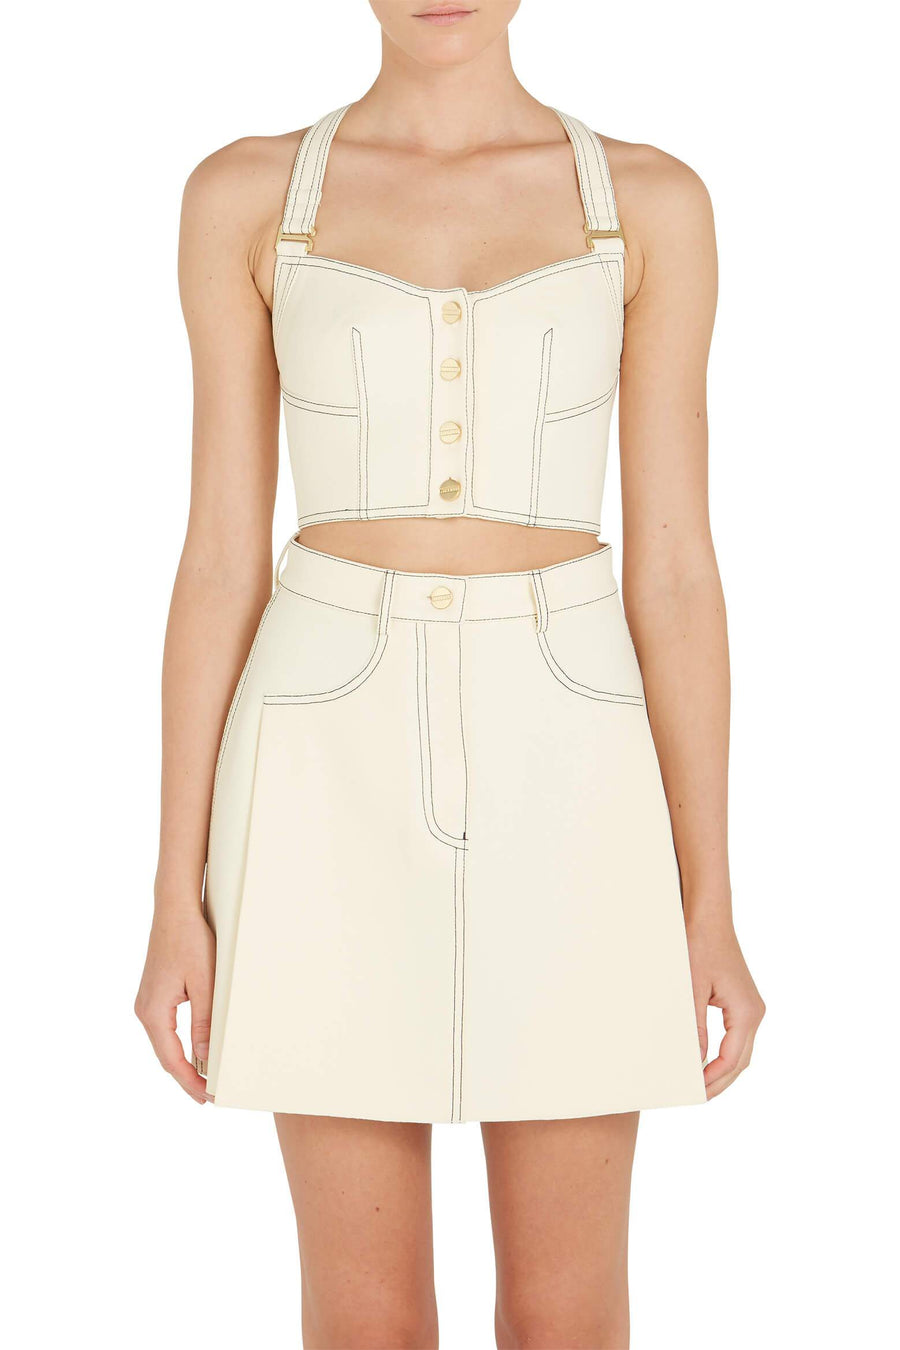 Dion Lee Bonded Crepe Rivet Bustier in Butter from The New Trend